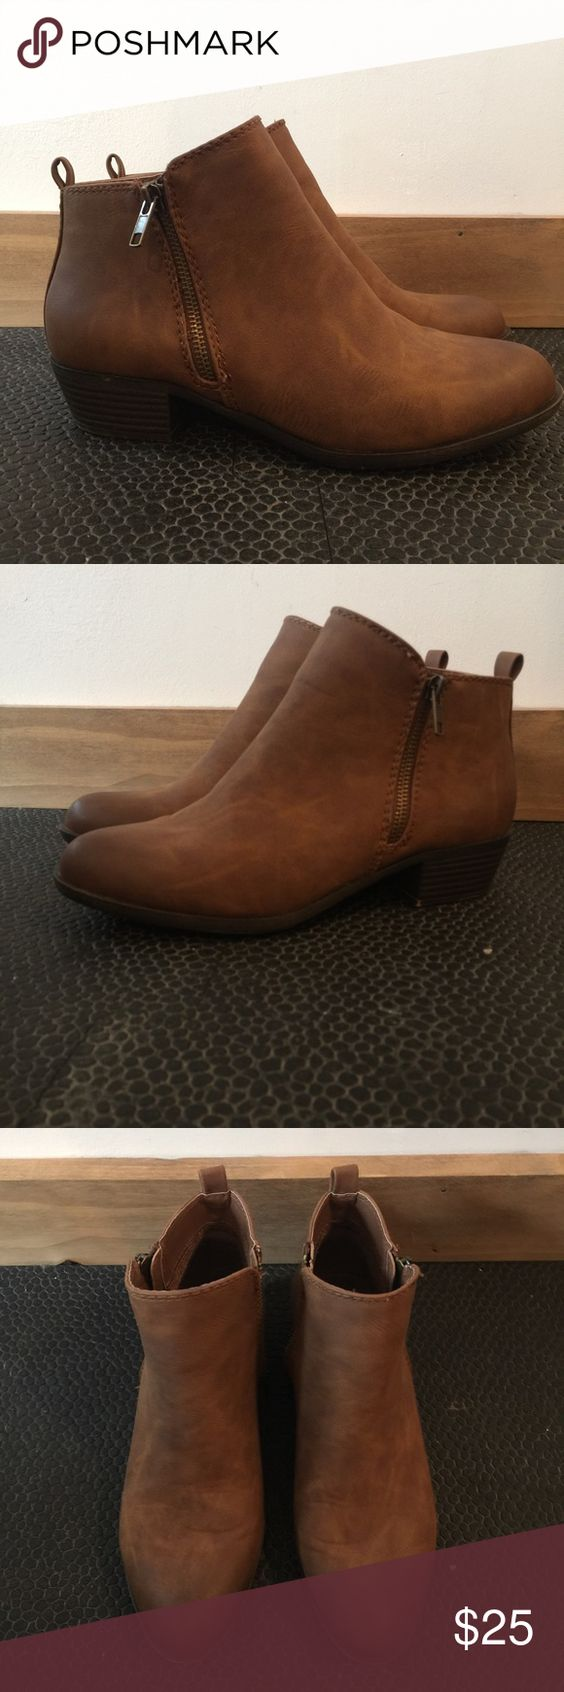 Madden Girl Ankle Boots. SIZE 8.5. Madden Girl Ankle Boots. SIZE 8.5. Perfect condition!! Madden Girl Shoes Ankle Boots & Booties